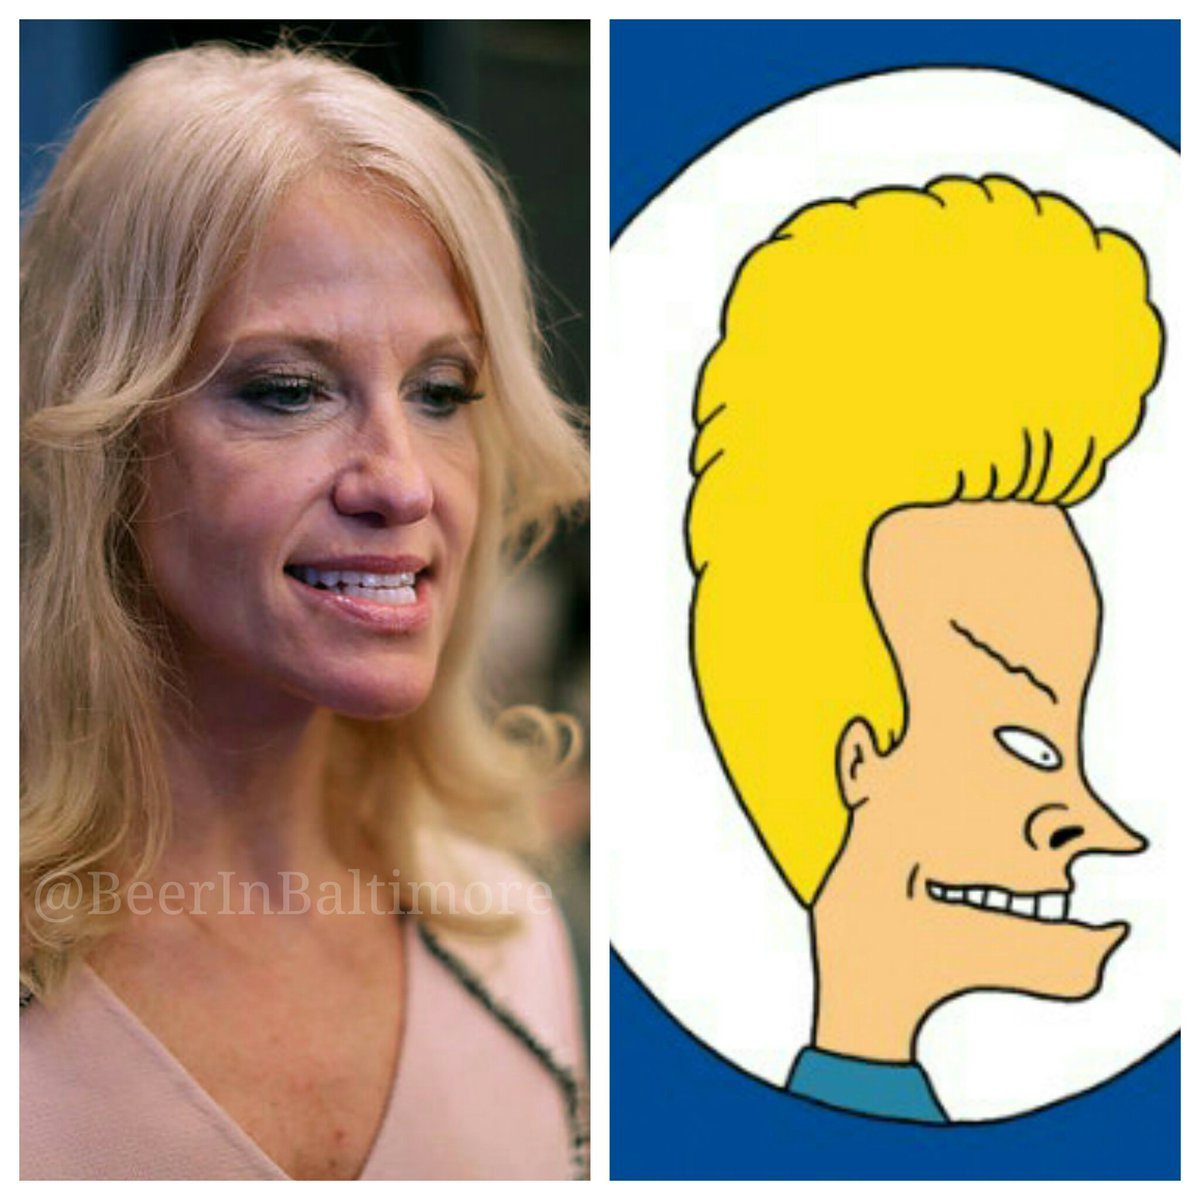 When you realize that @realDonaldTrump hired Beavis to be his mouthpiece... #alternativefact @KellyannePolls https://t.co/Hs0iQL8ThX